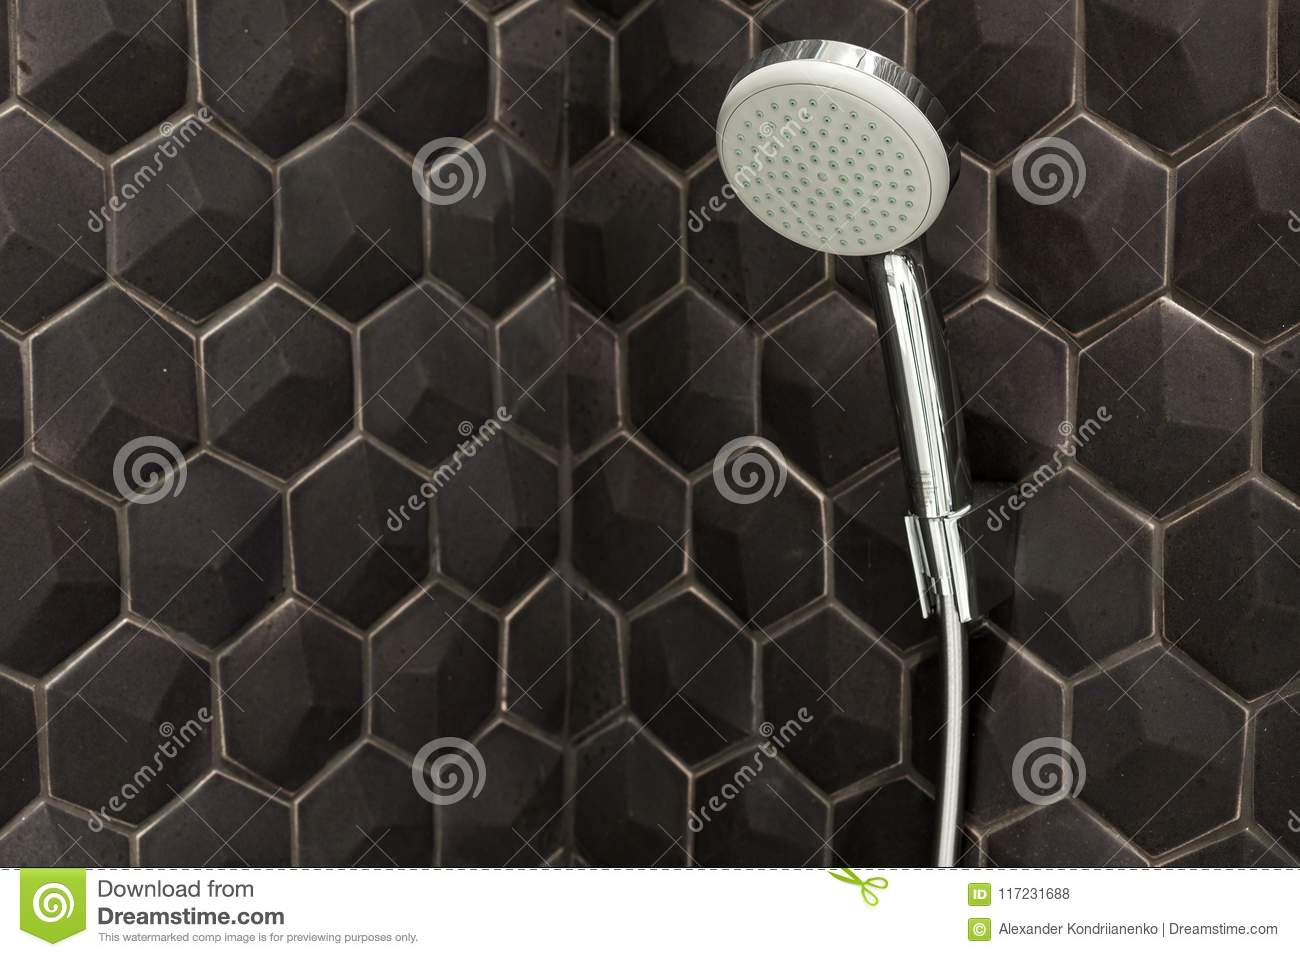 Close up of new rain shower head in the bathroom against a background of black tiles.